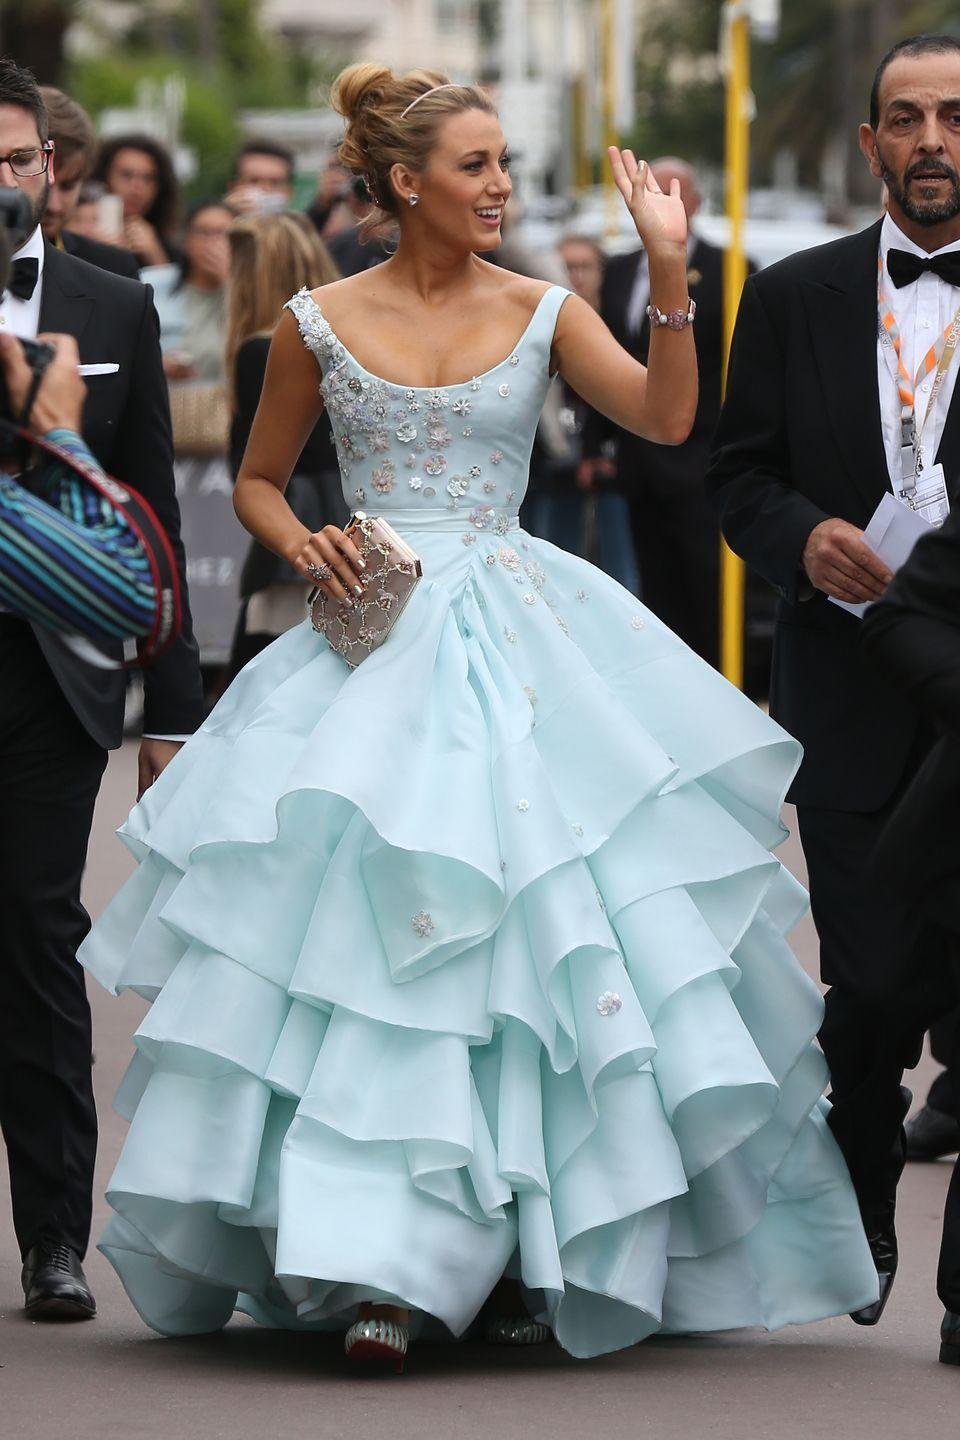 <p>Blake Lively drew many comparisons to Cinderella when she wore this light blue gown designed by Vivienne Westwood to the premiere of <em>Slack Bay</em> at the Cannes Film Festival in 2016.</p>